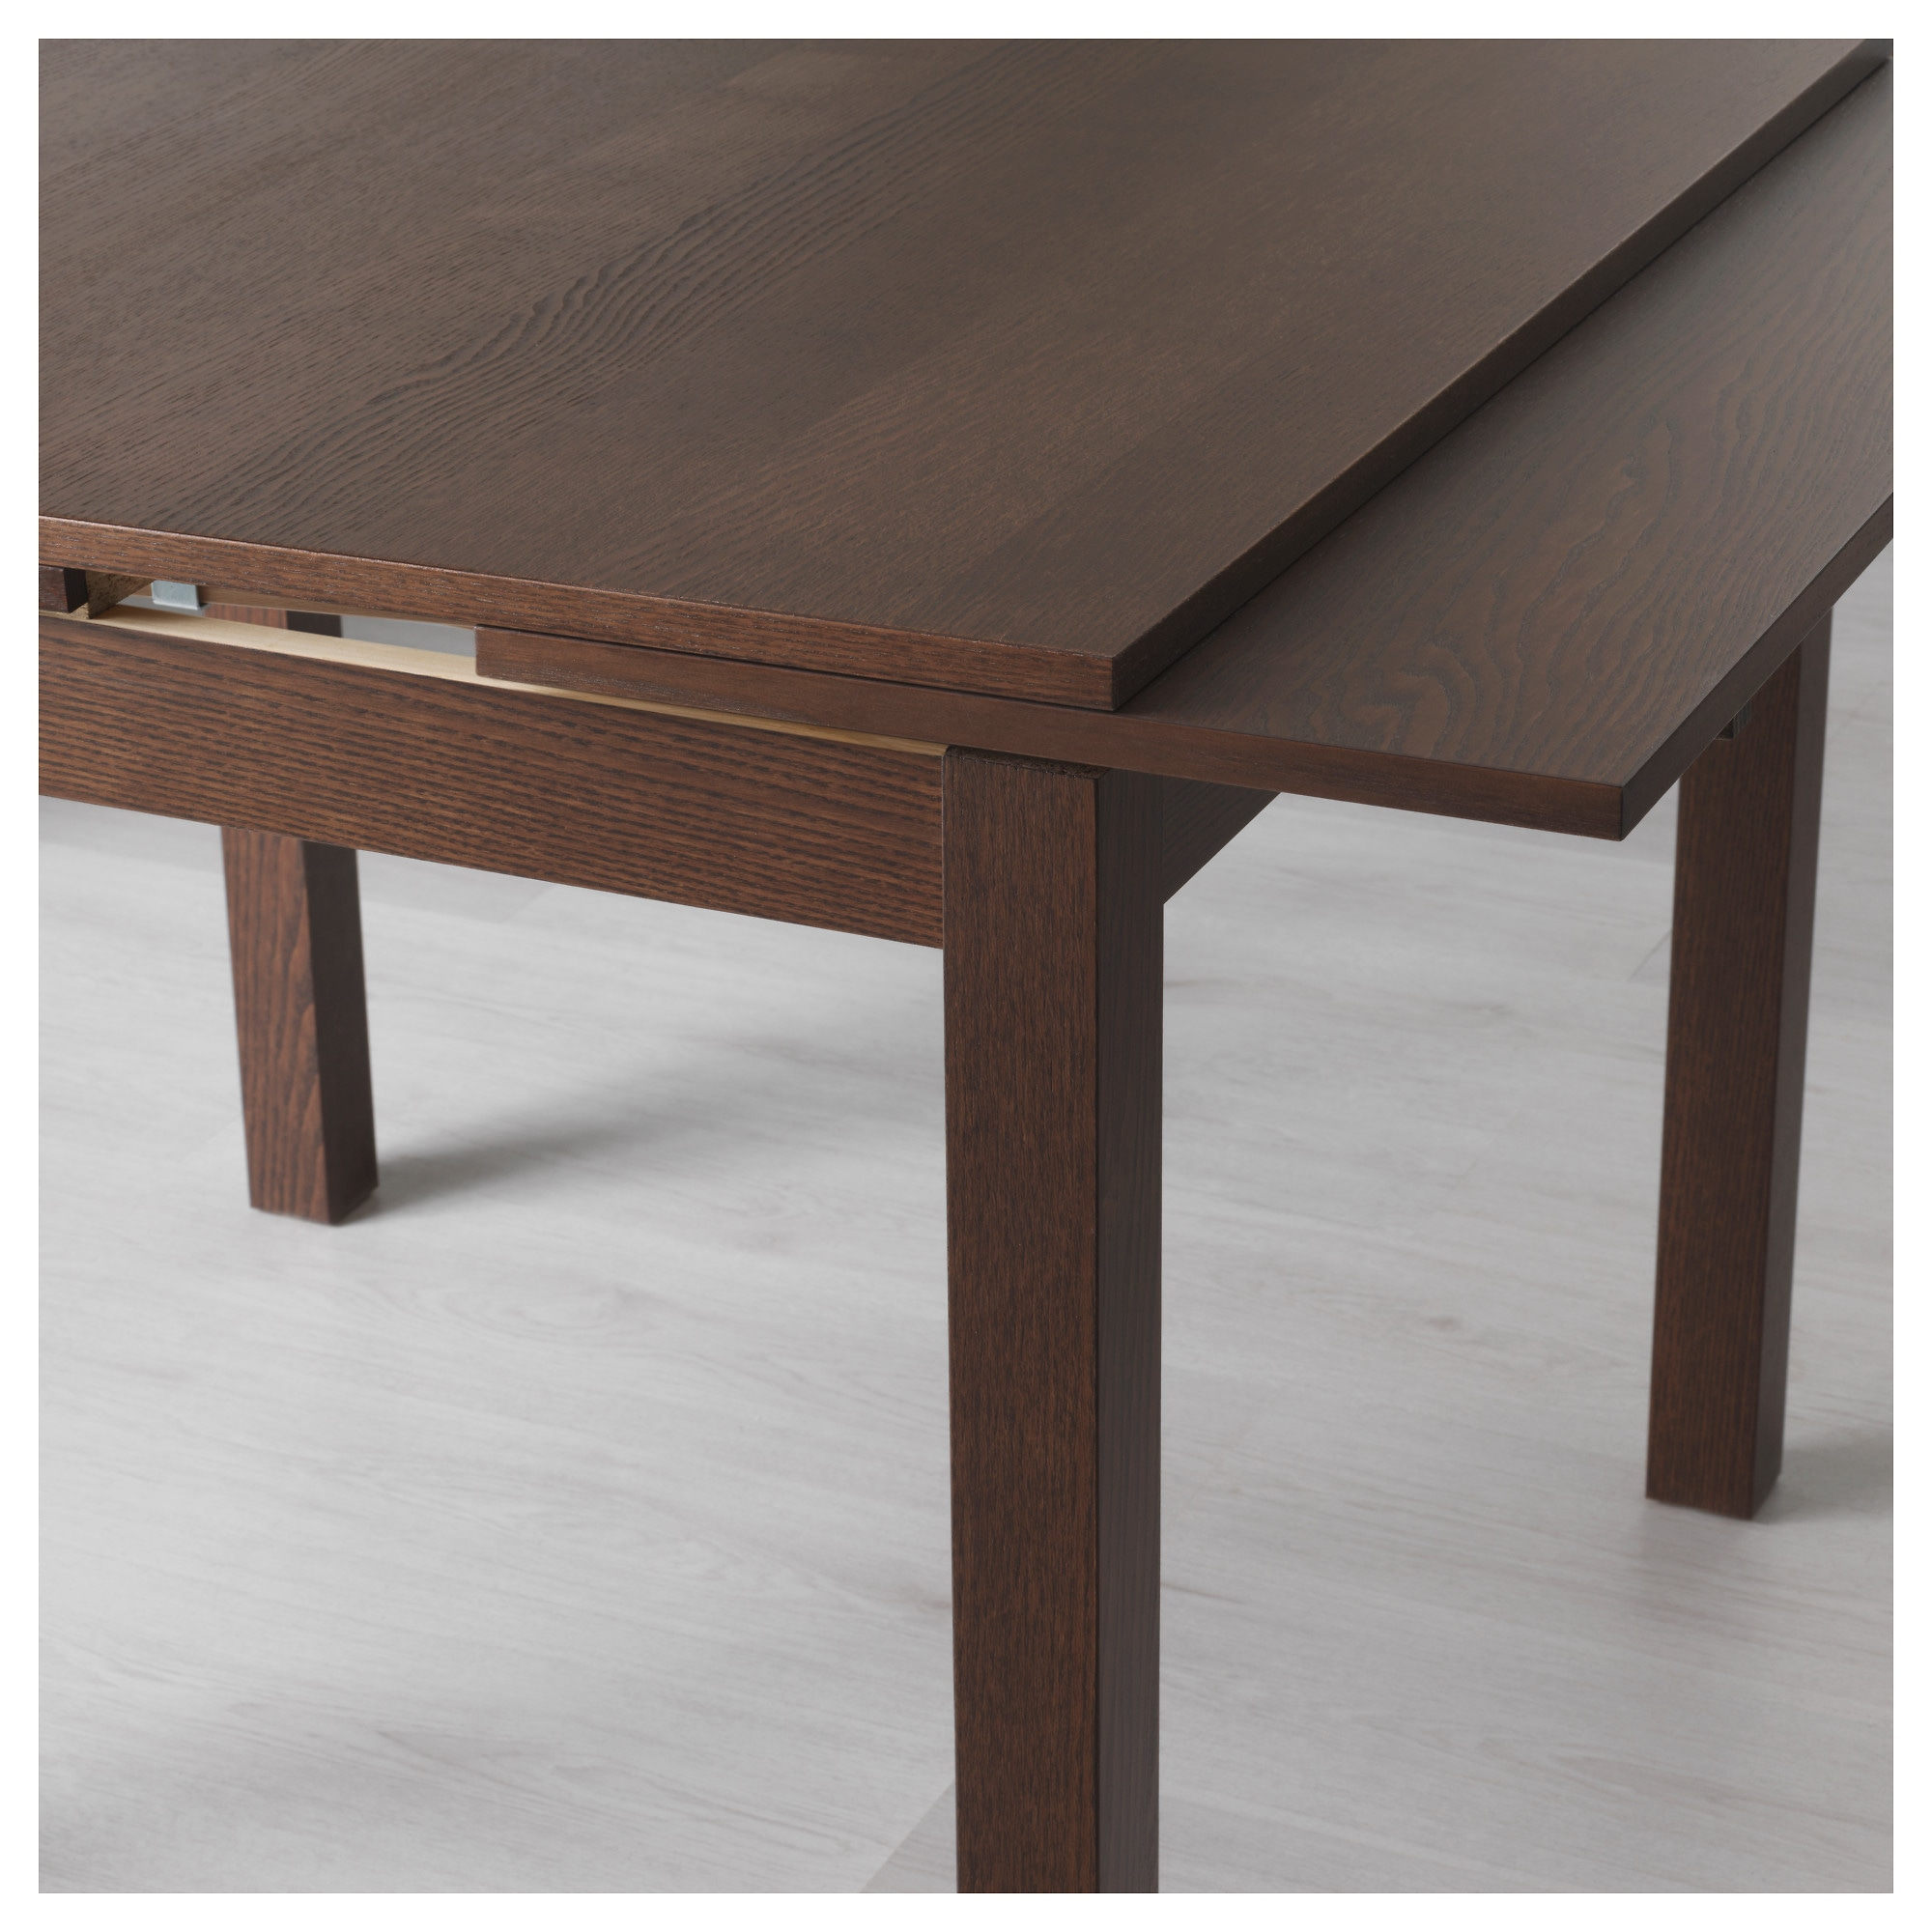 BJURSTA Extendable table birch veneer IKEA